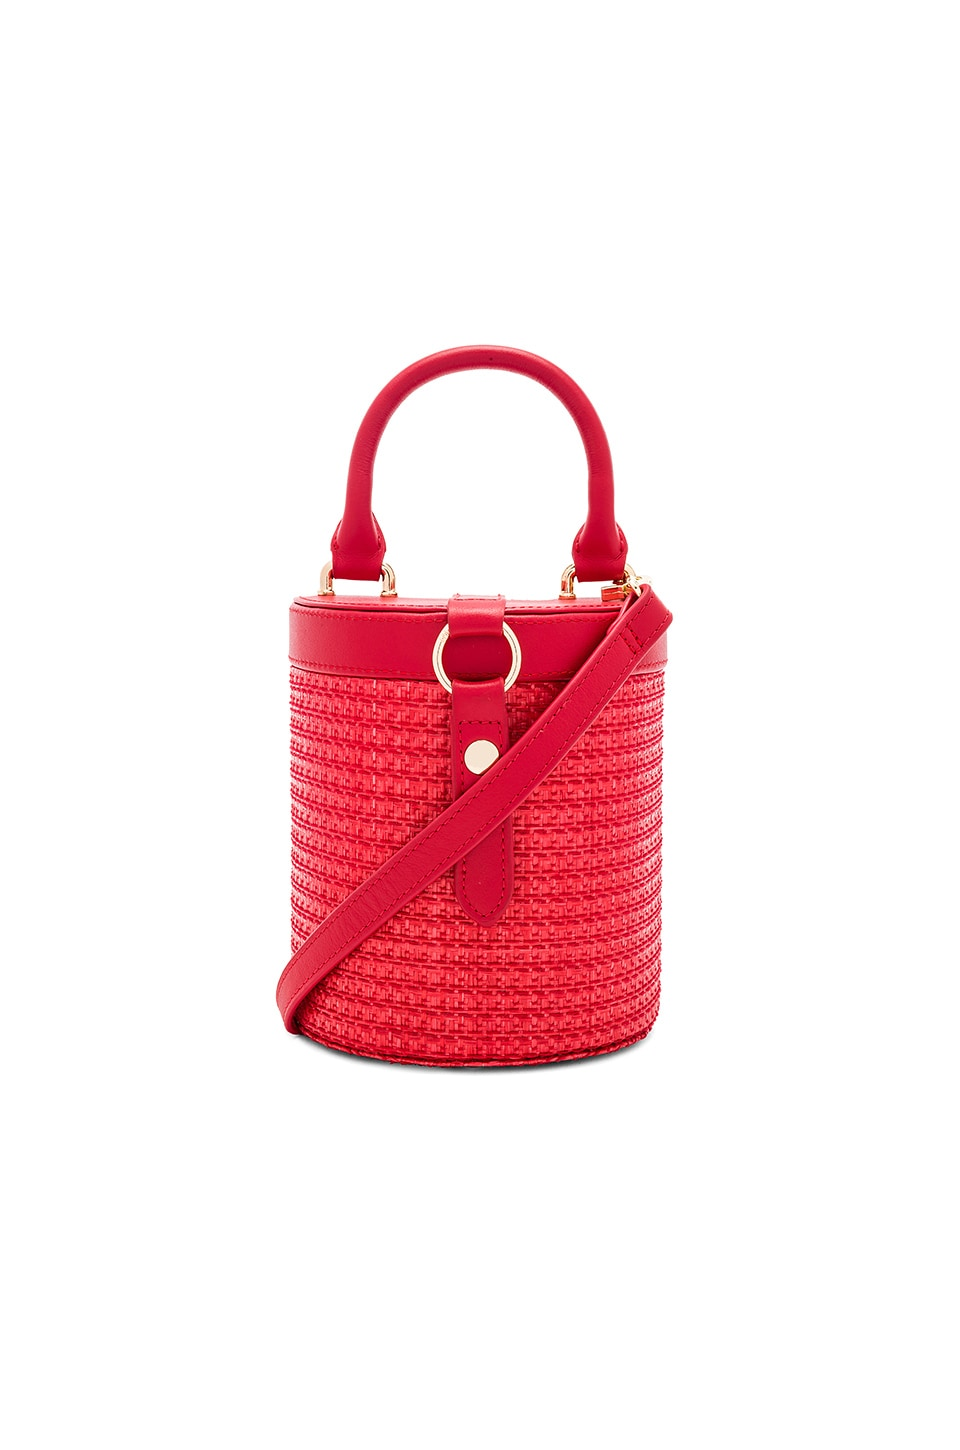 LPA Gia Bag in Ruby